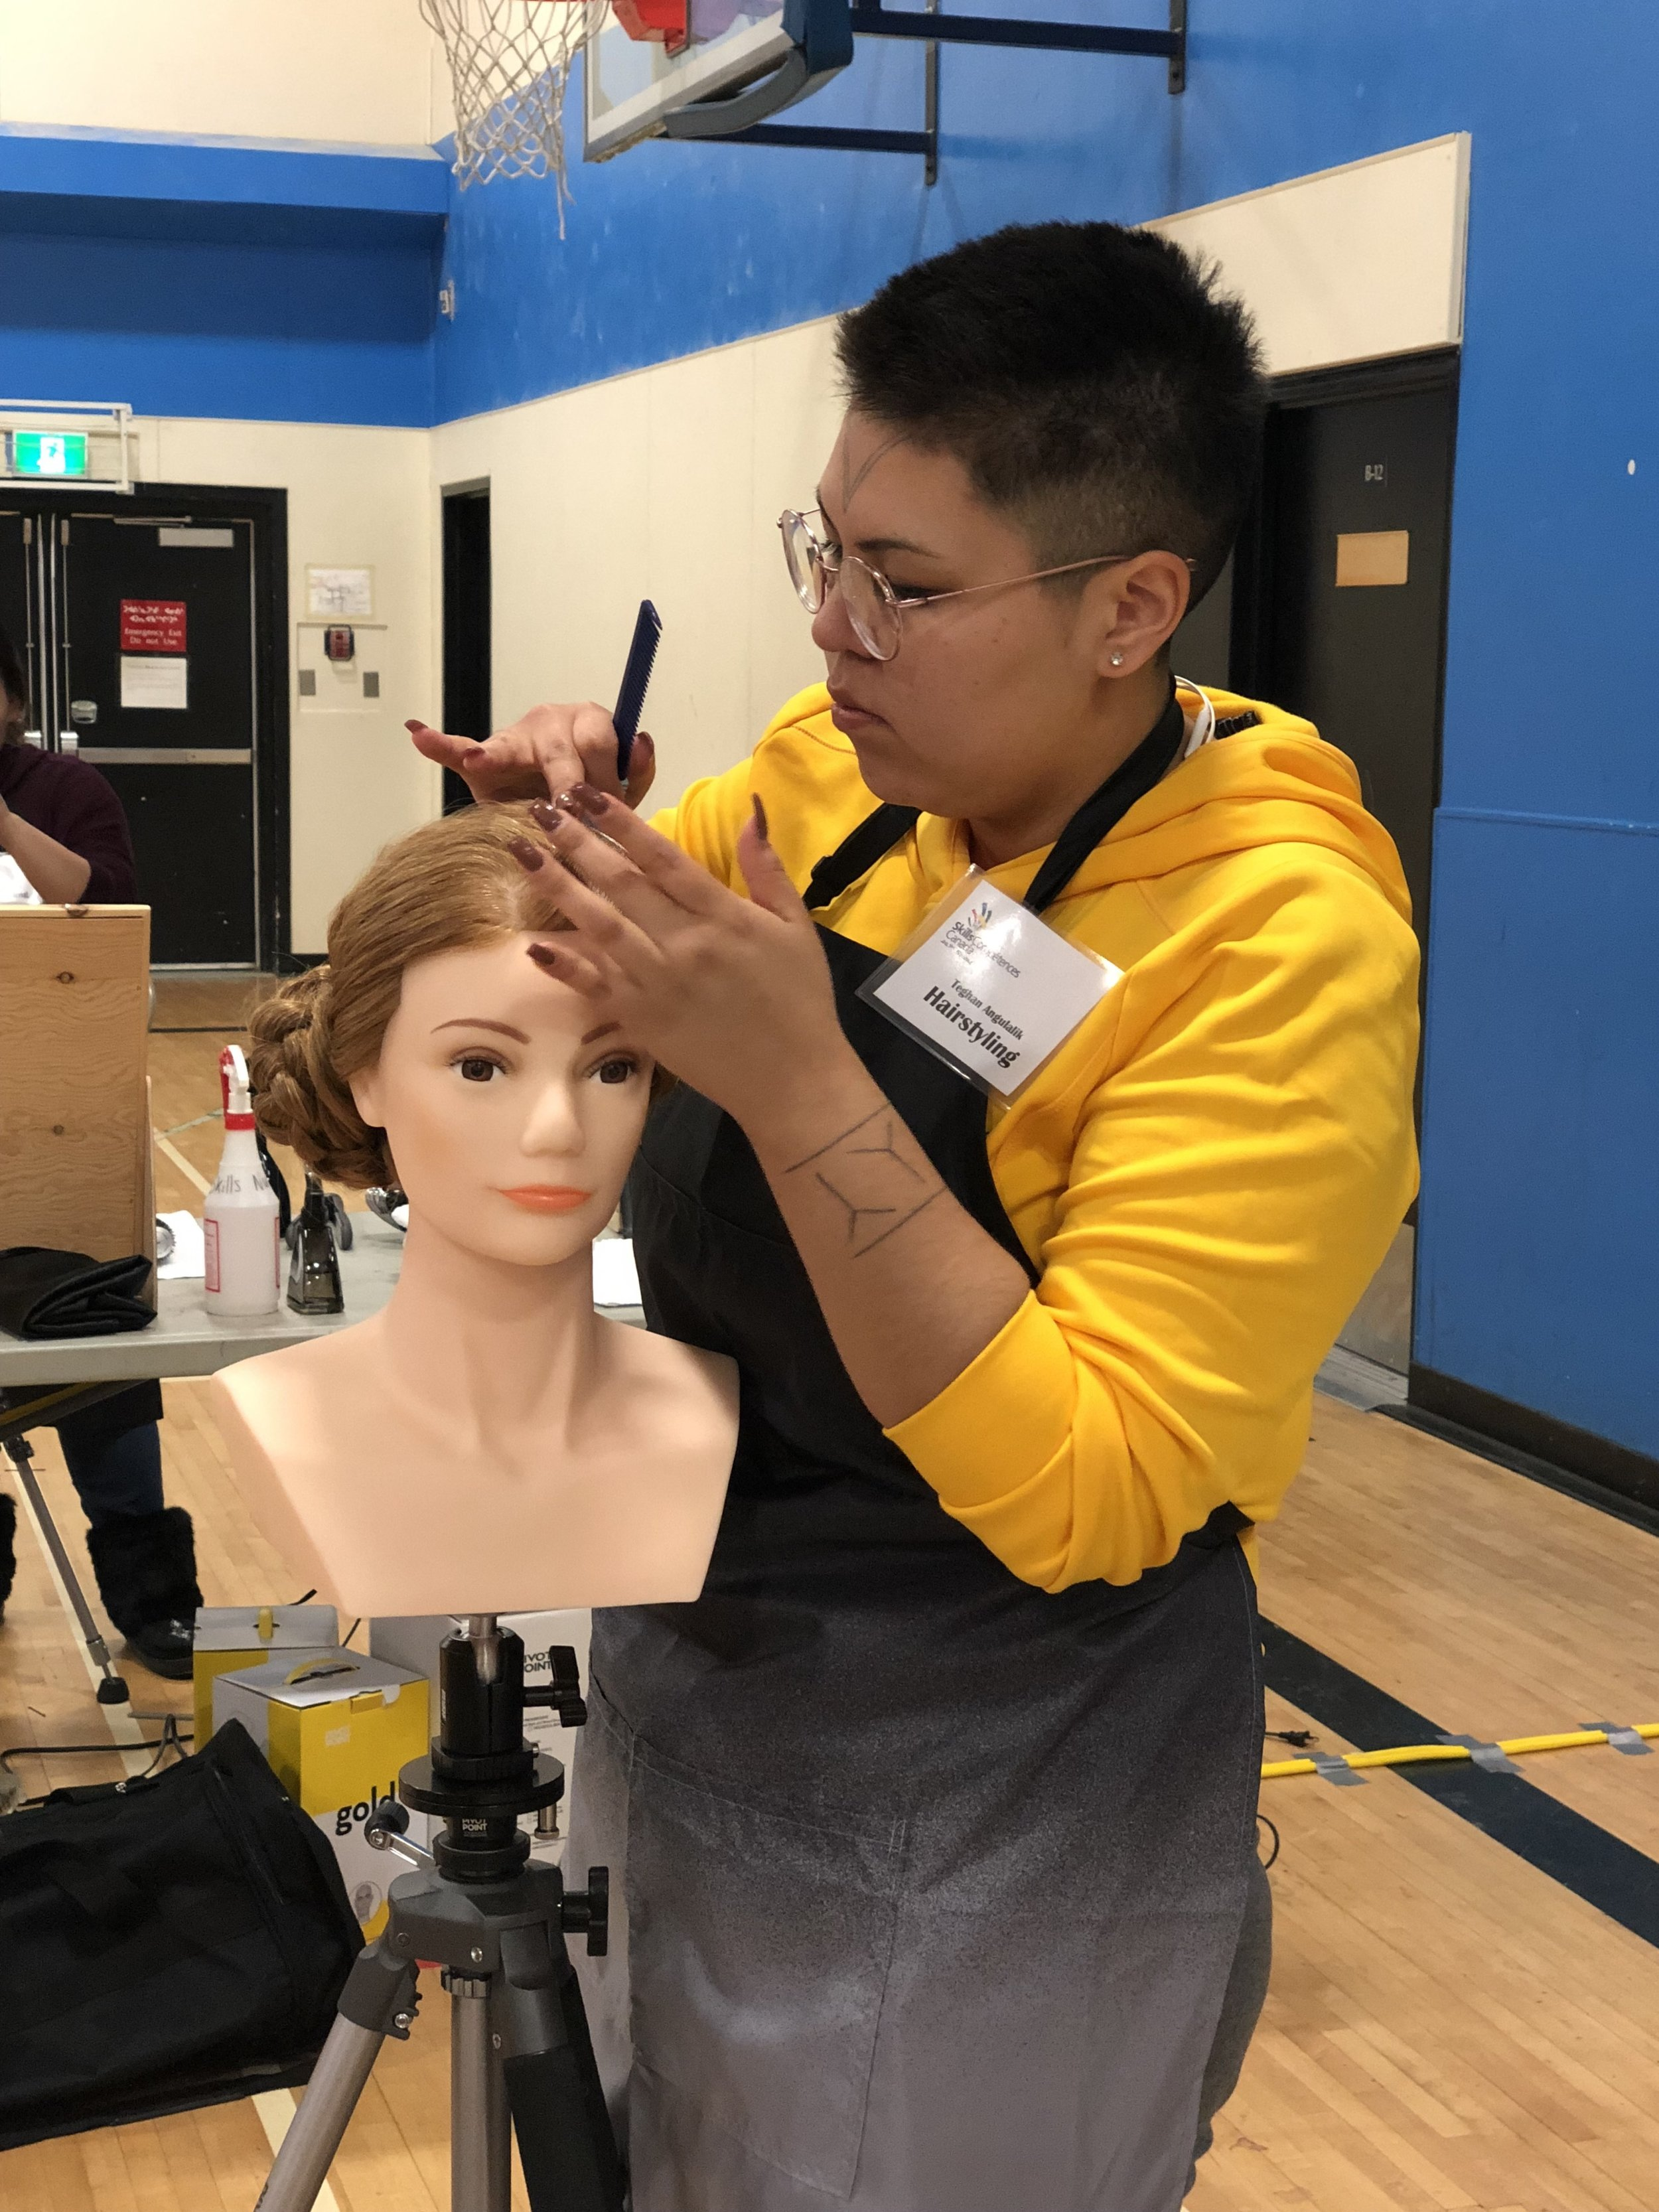 Skills Hairstyling Camp coming to Iqaluit and Rankin Inlet!